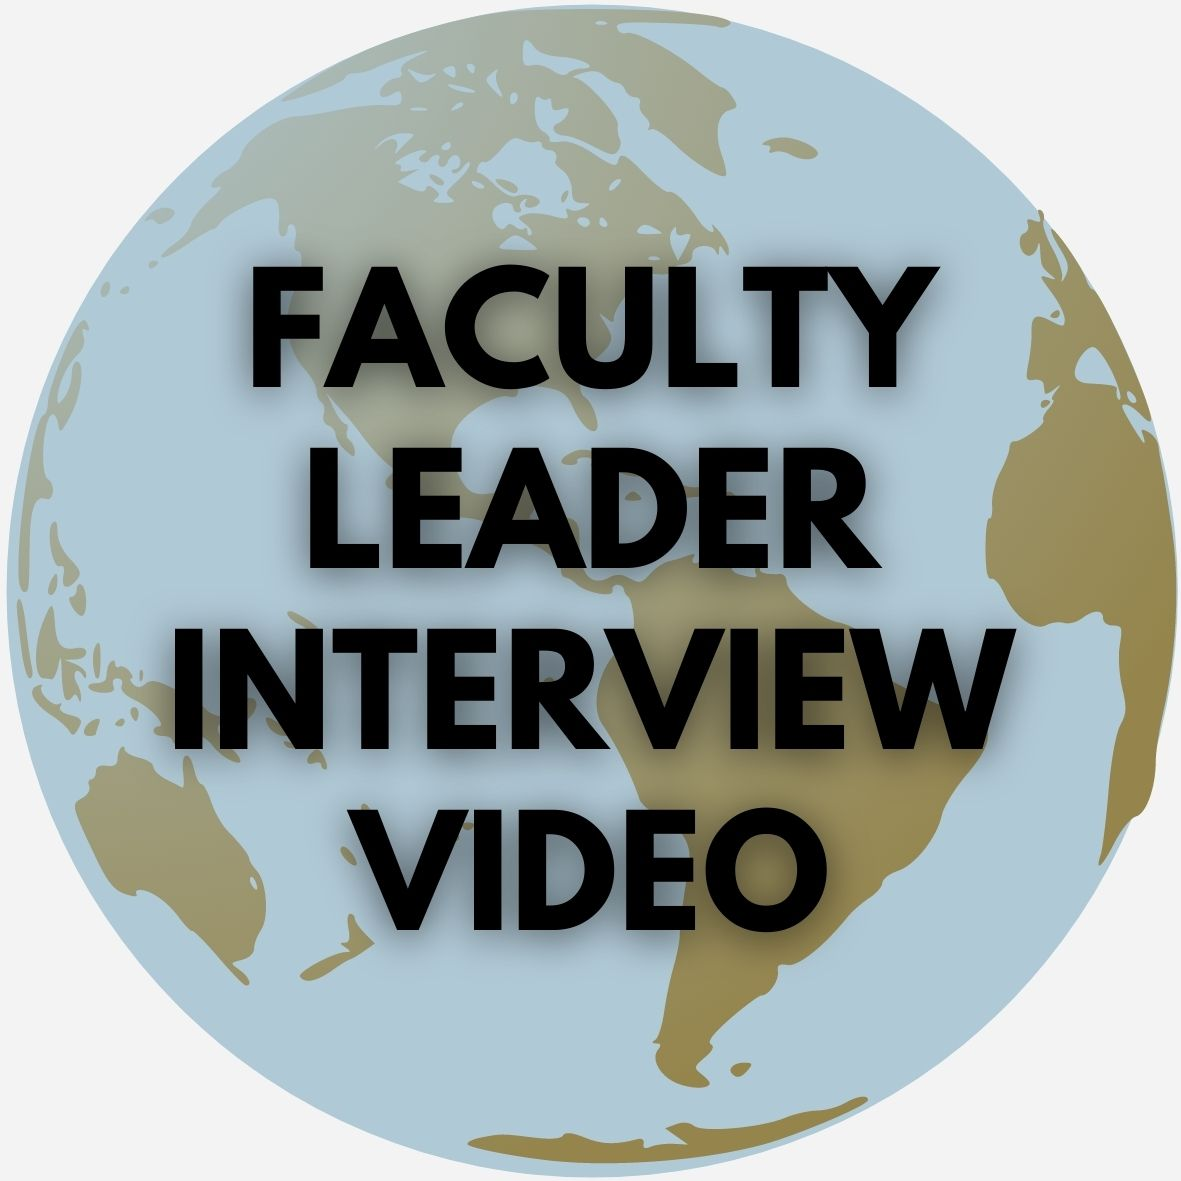 Faculty leader interview video